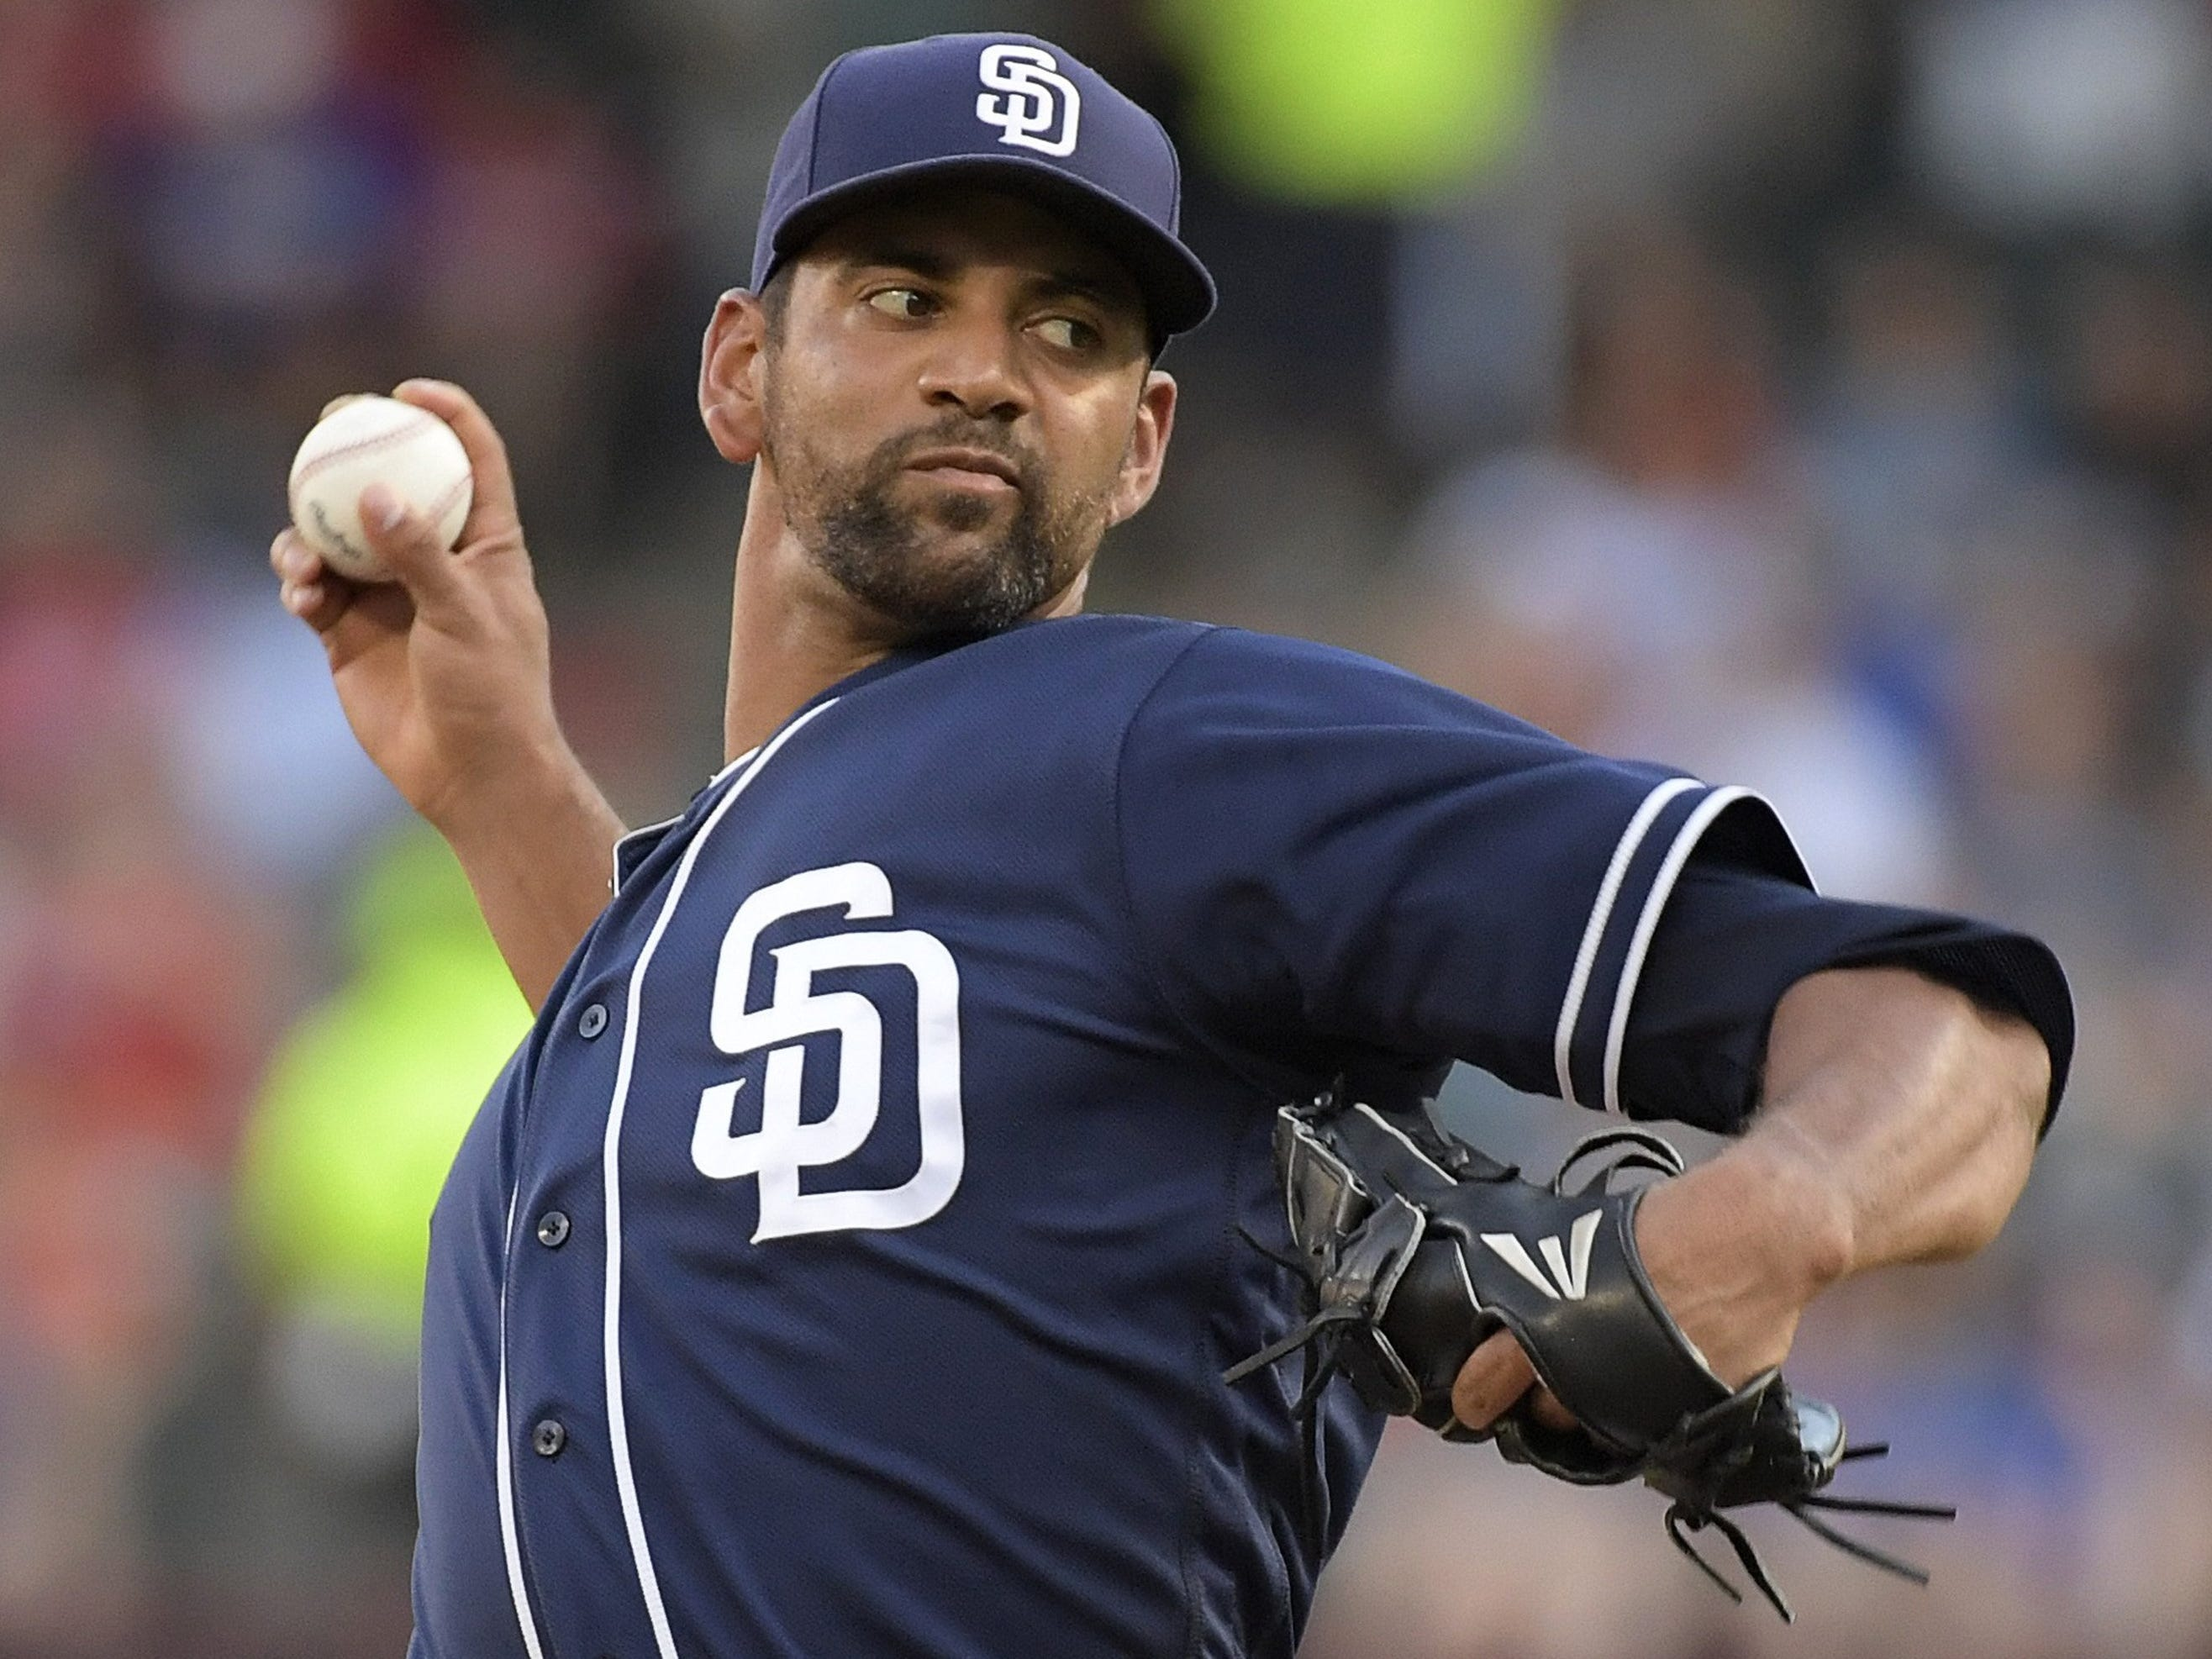 Padres pitcher Tyson Ross works during the first inning against the Texas Rangers at Globe Life Park in Arlington, Texas, on Tuesday, June 26, 2018.